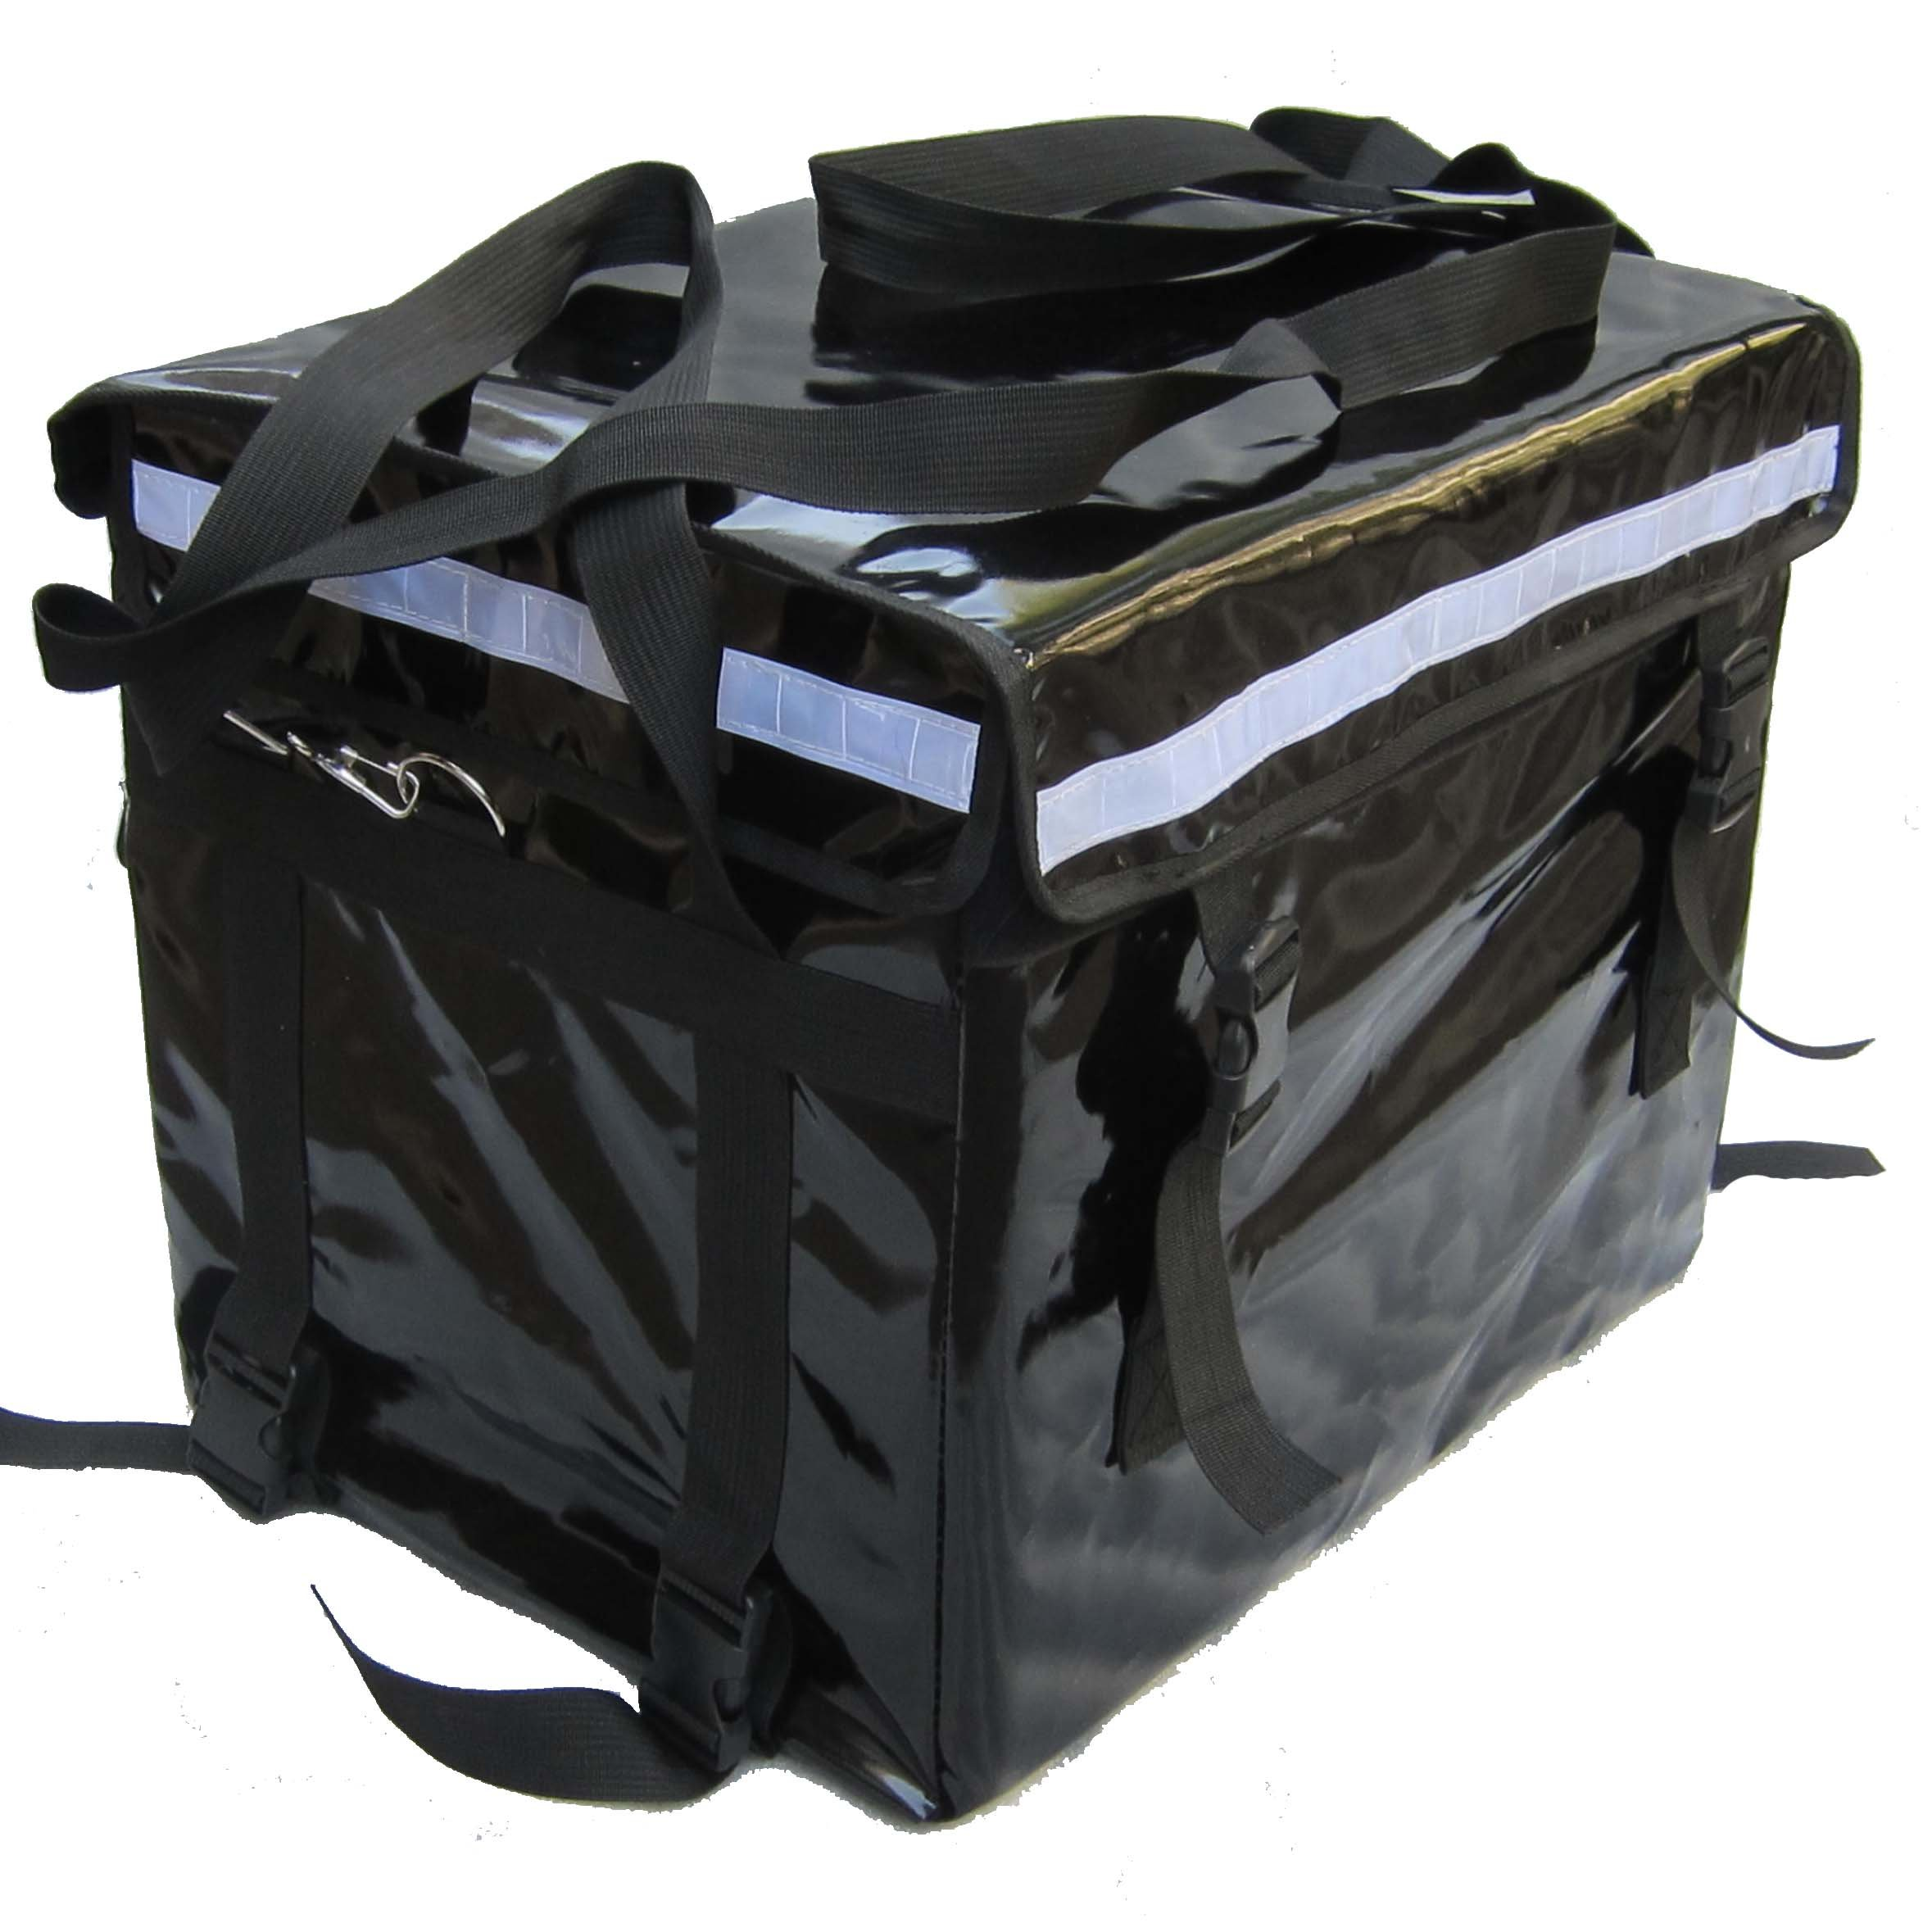 PK-46C: Food Delivery Box For Scooter/Bike/Motorcycle with Best Performance and Rigid Basket, 17'' L x 12'' W x 13'' H